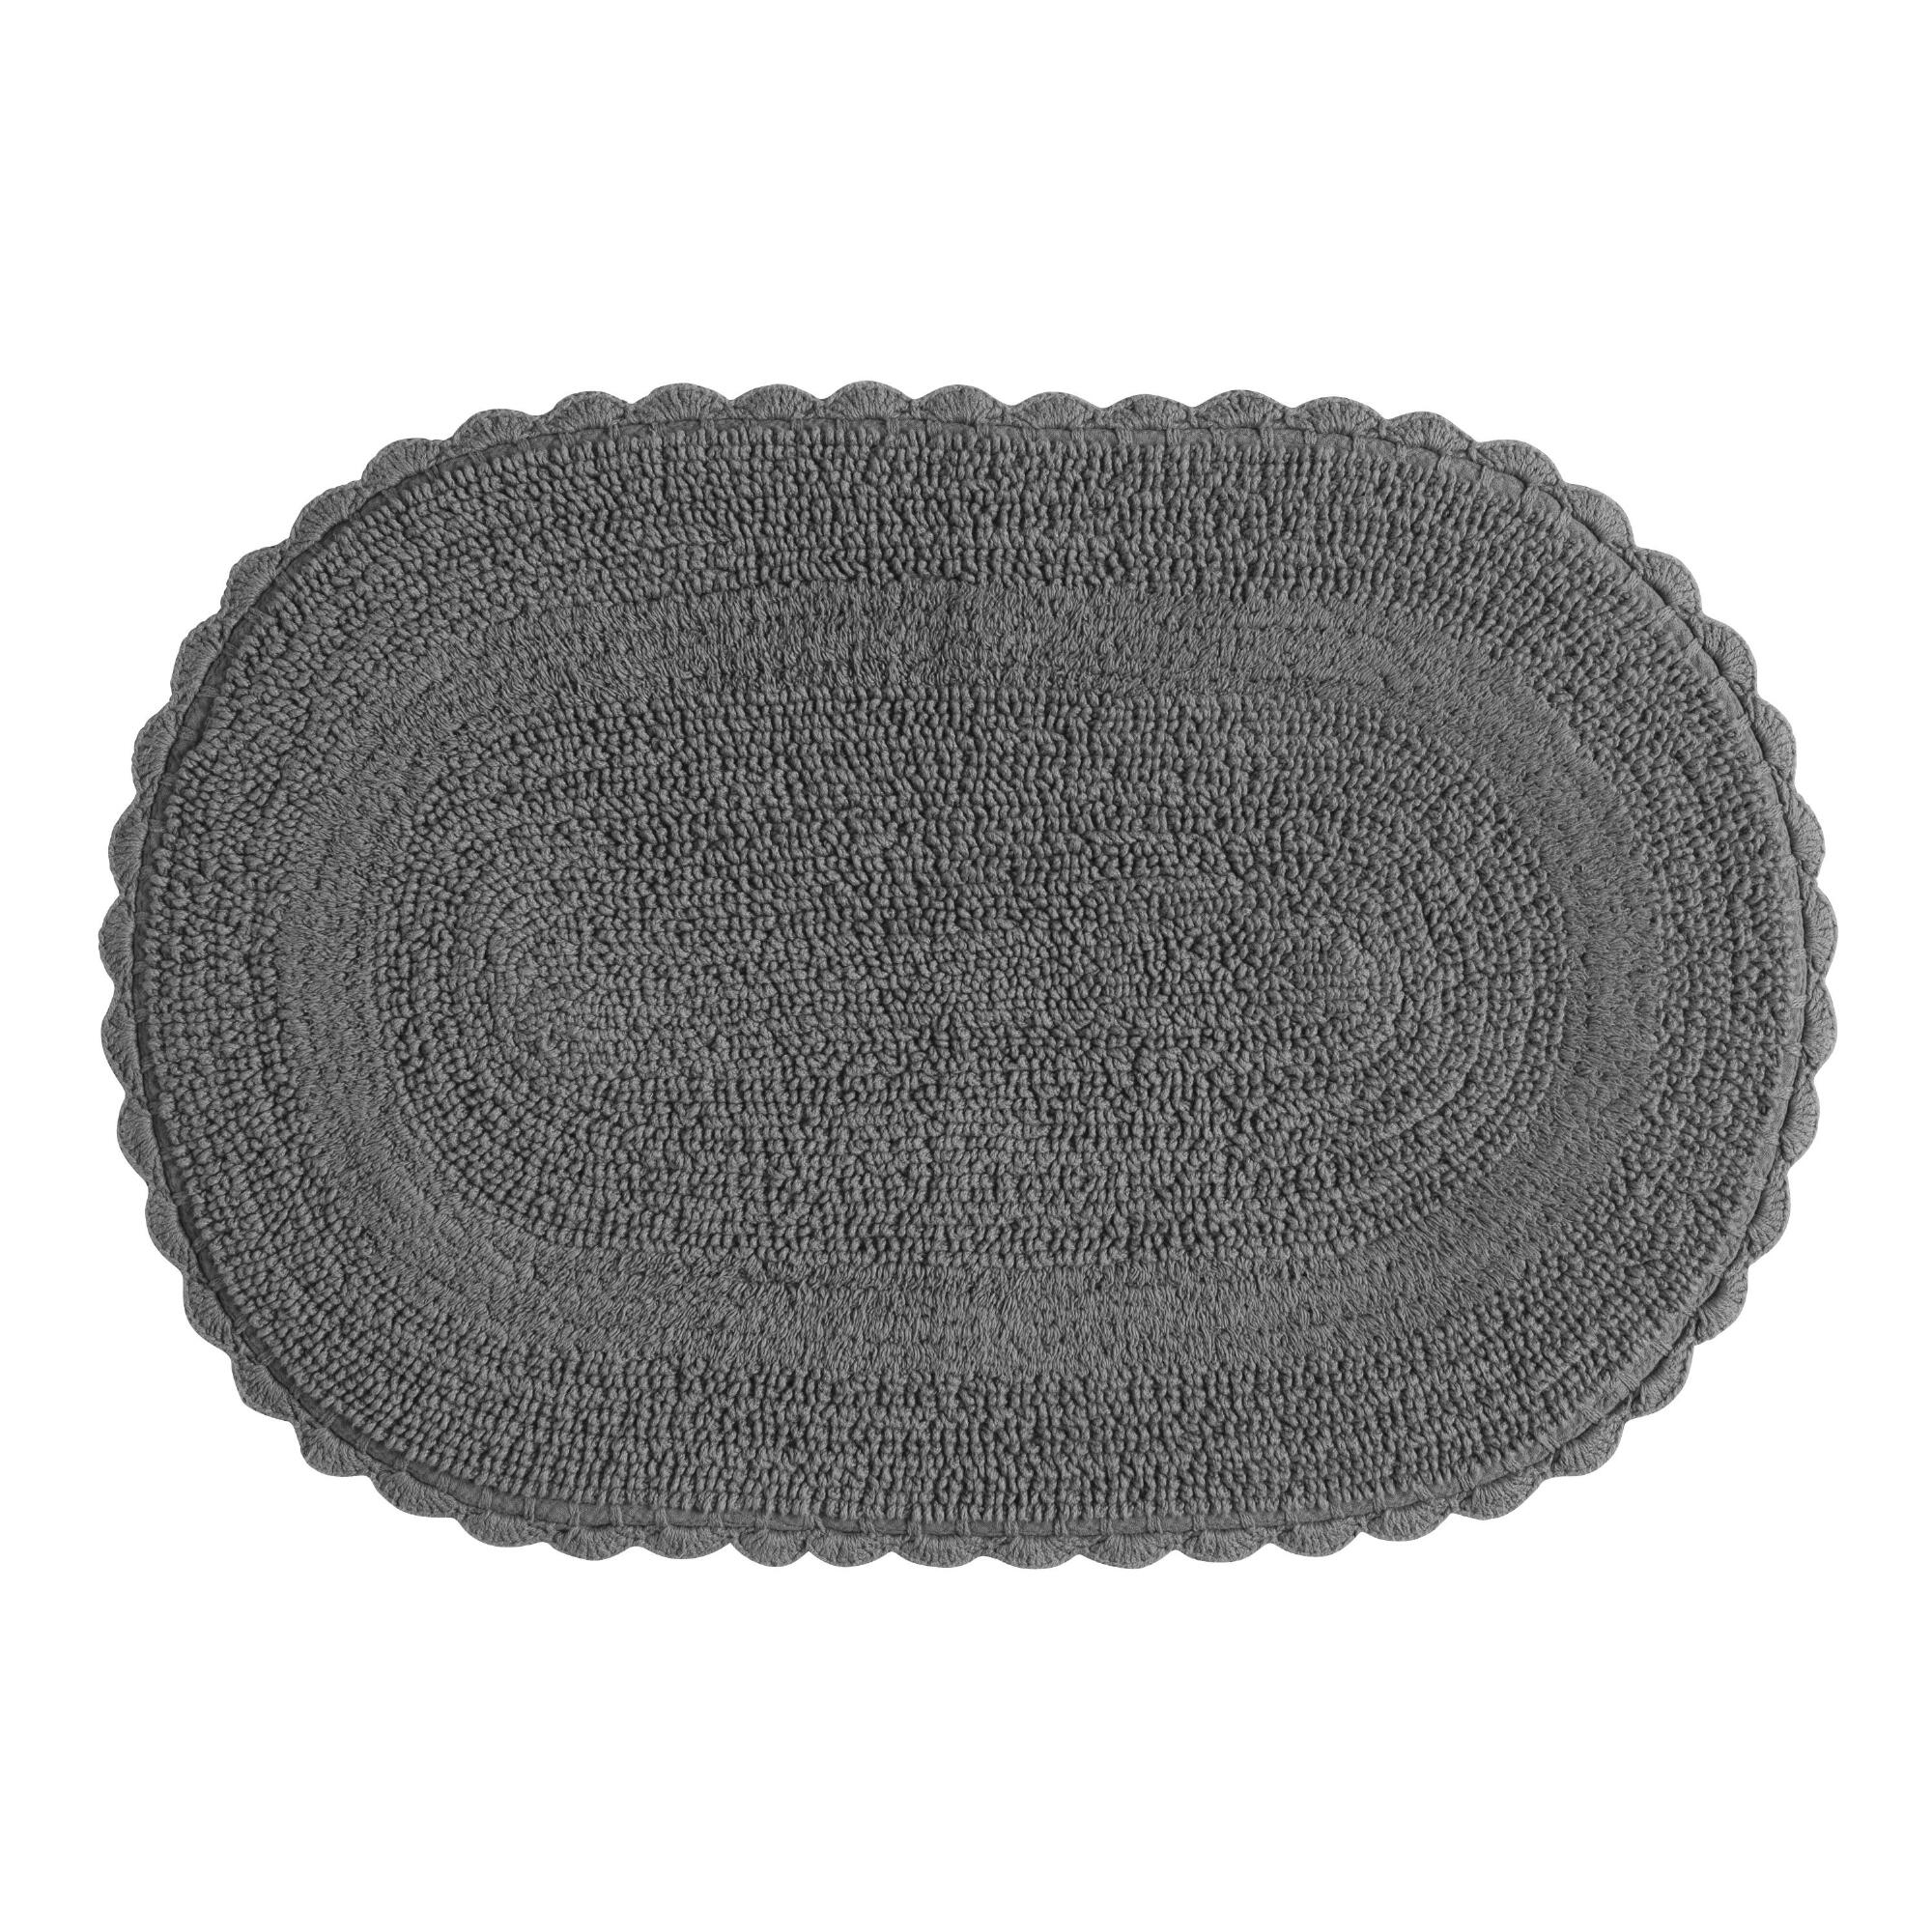 Gray Oval Crochet Bath Mat World Market